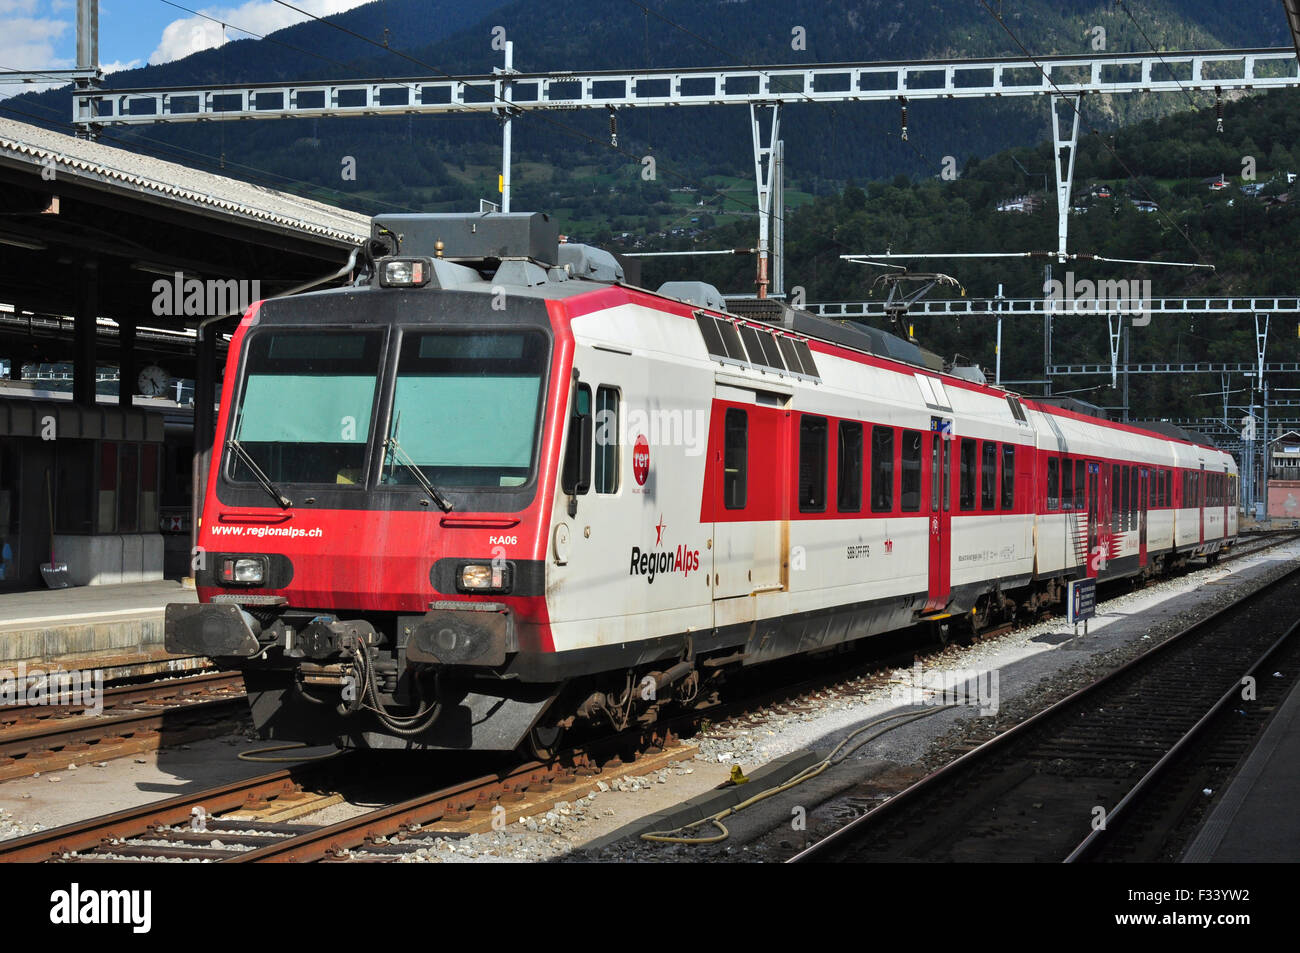 Electric Multiple Unit Passenger Train waiting on centre road at Brig, Valais, Switzerland - Stock Image